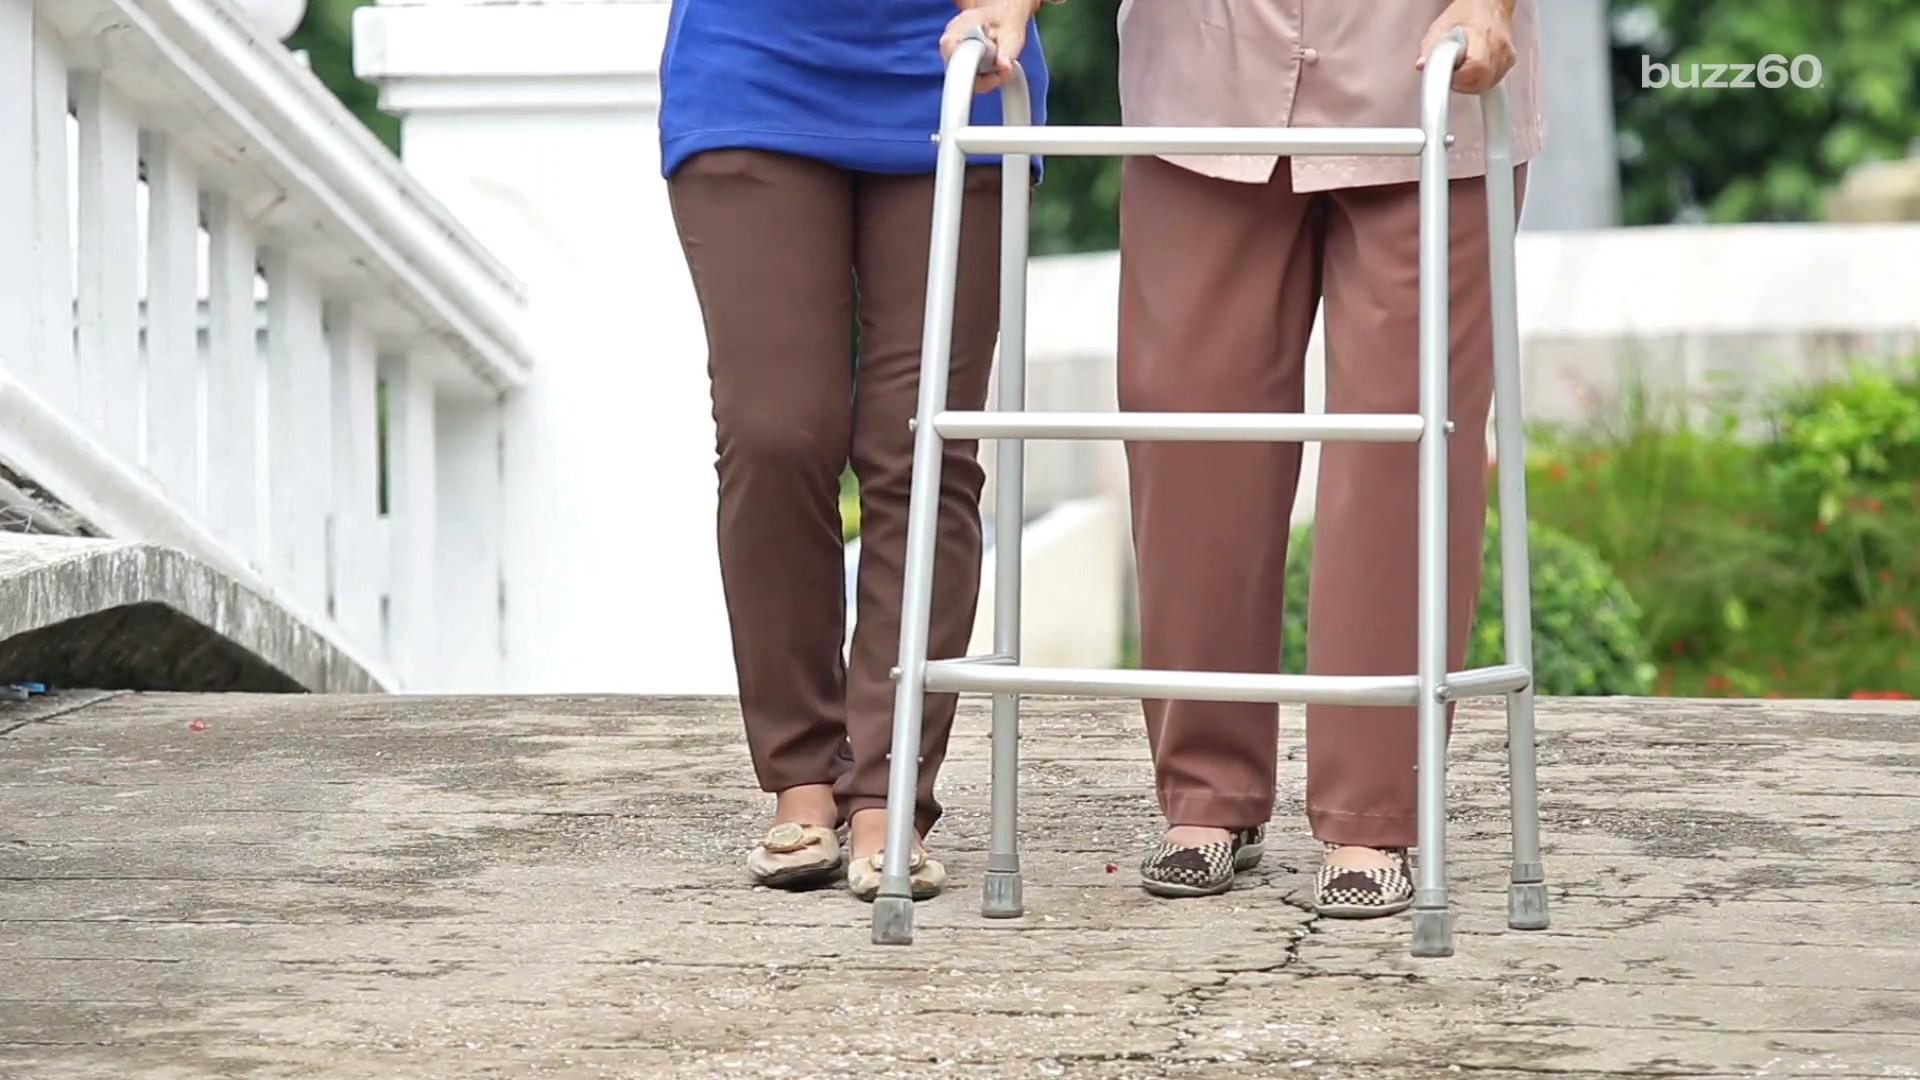 UK's first LGBT senior care facility is in the works